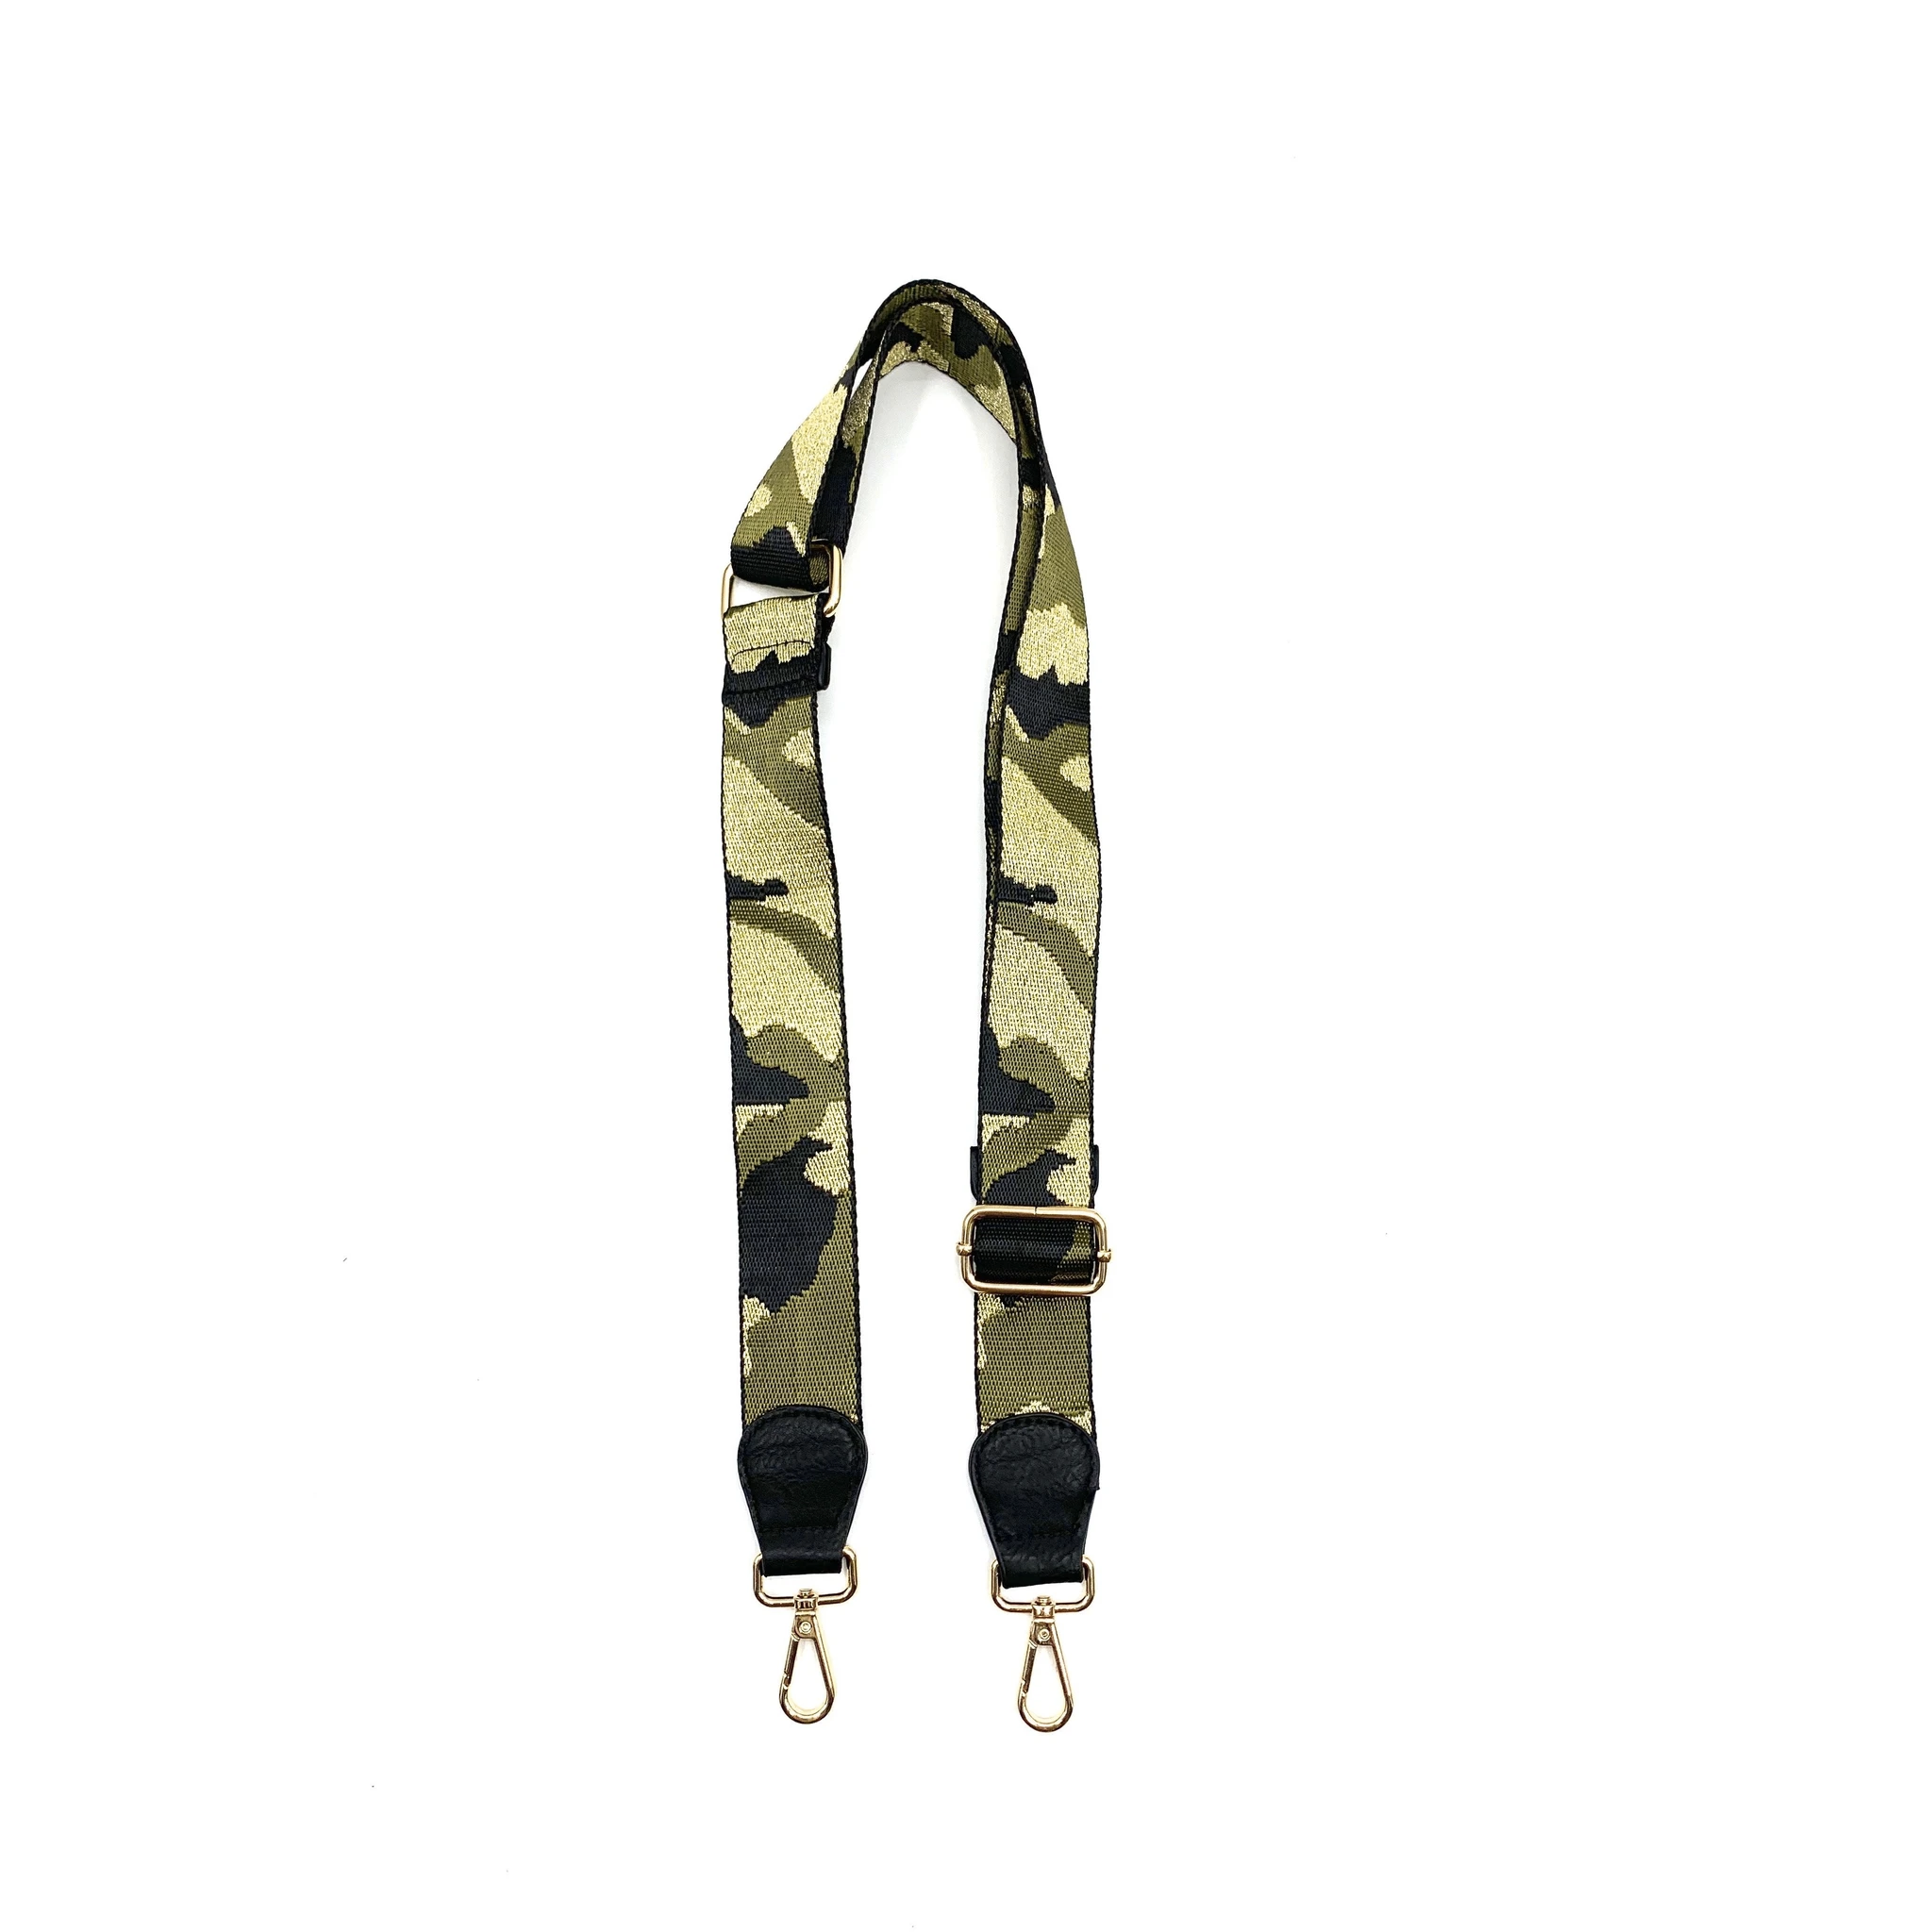 "1.5"" Camo Black/Army/Gold Bag Strap"